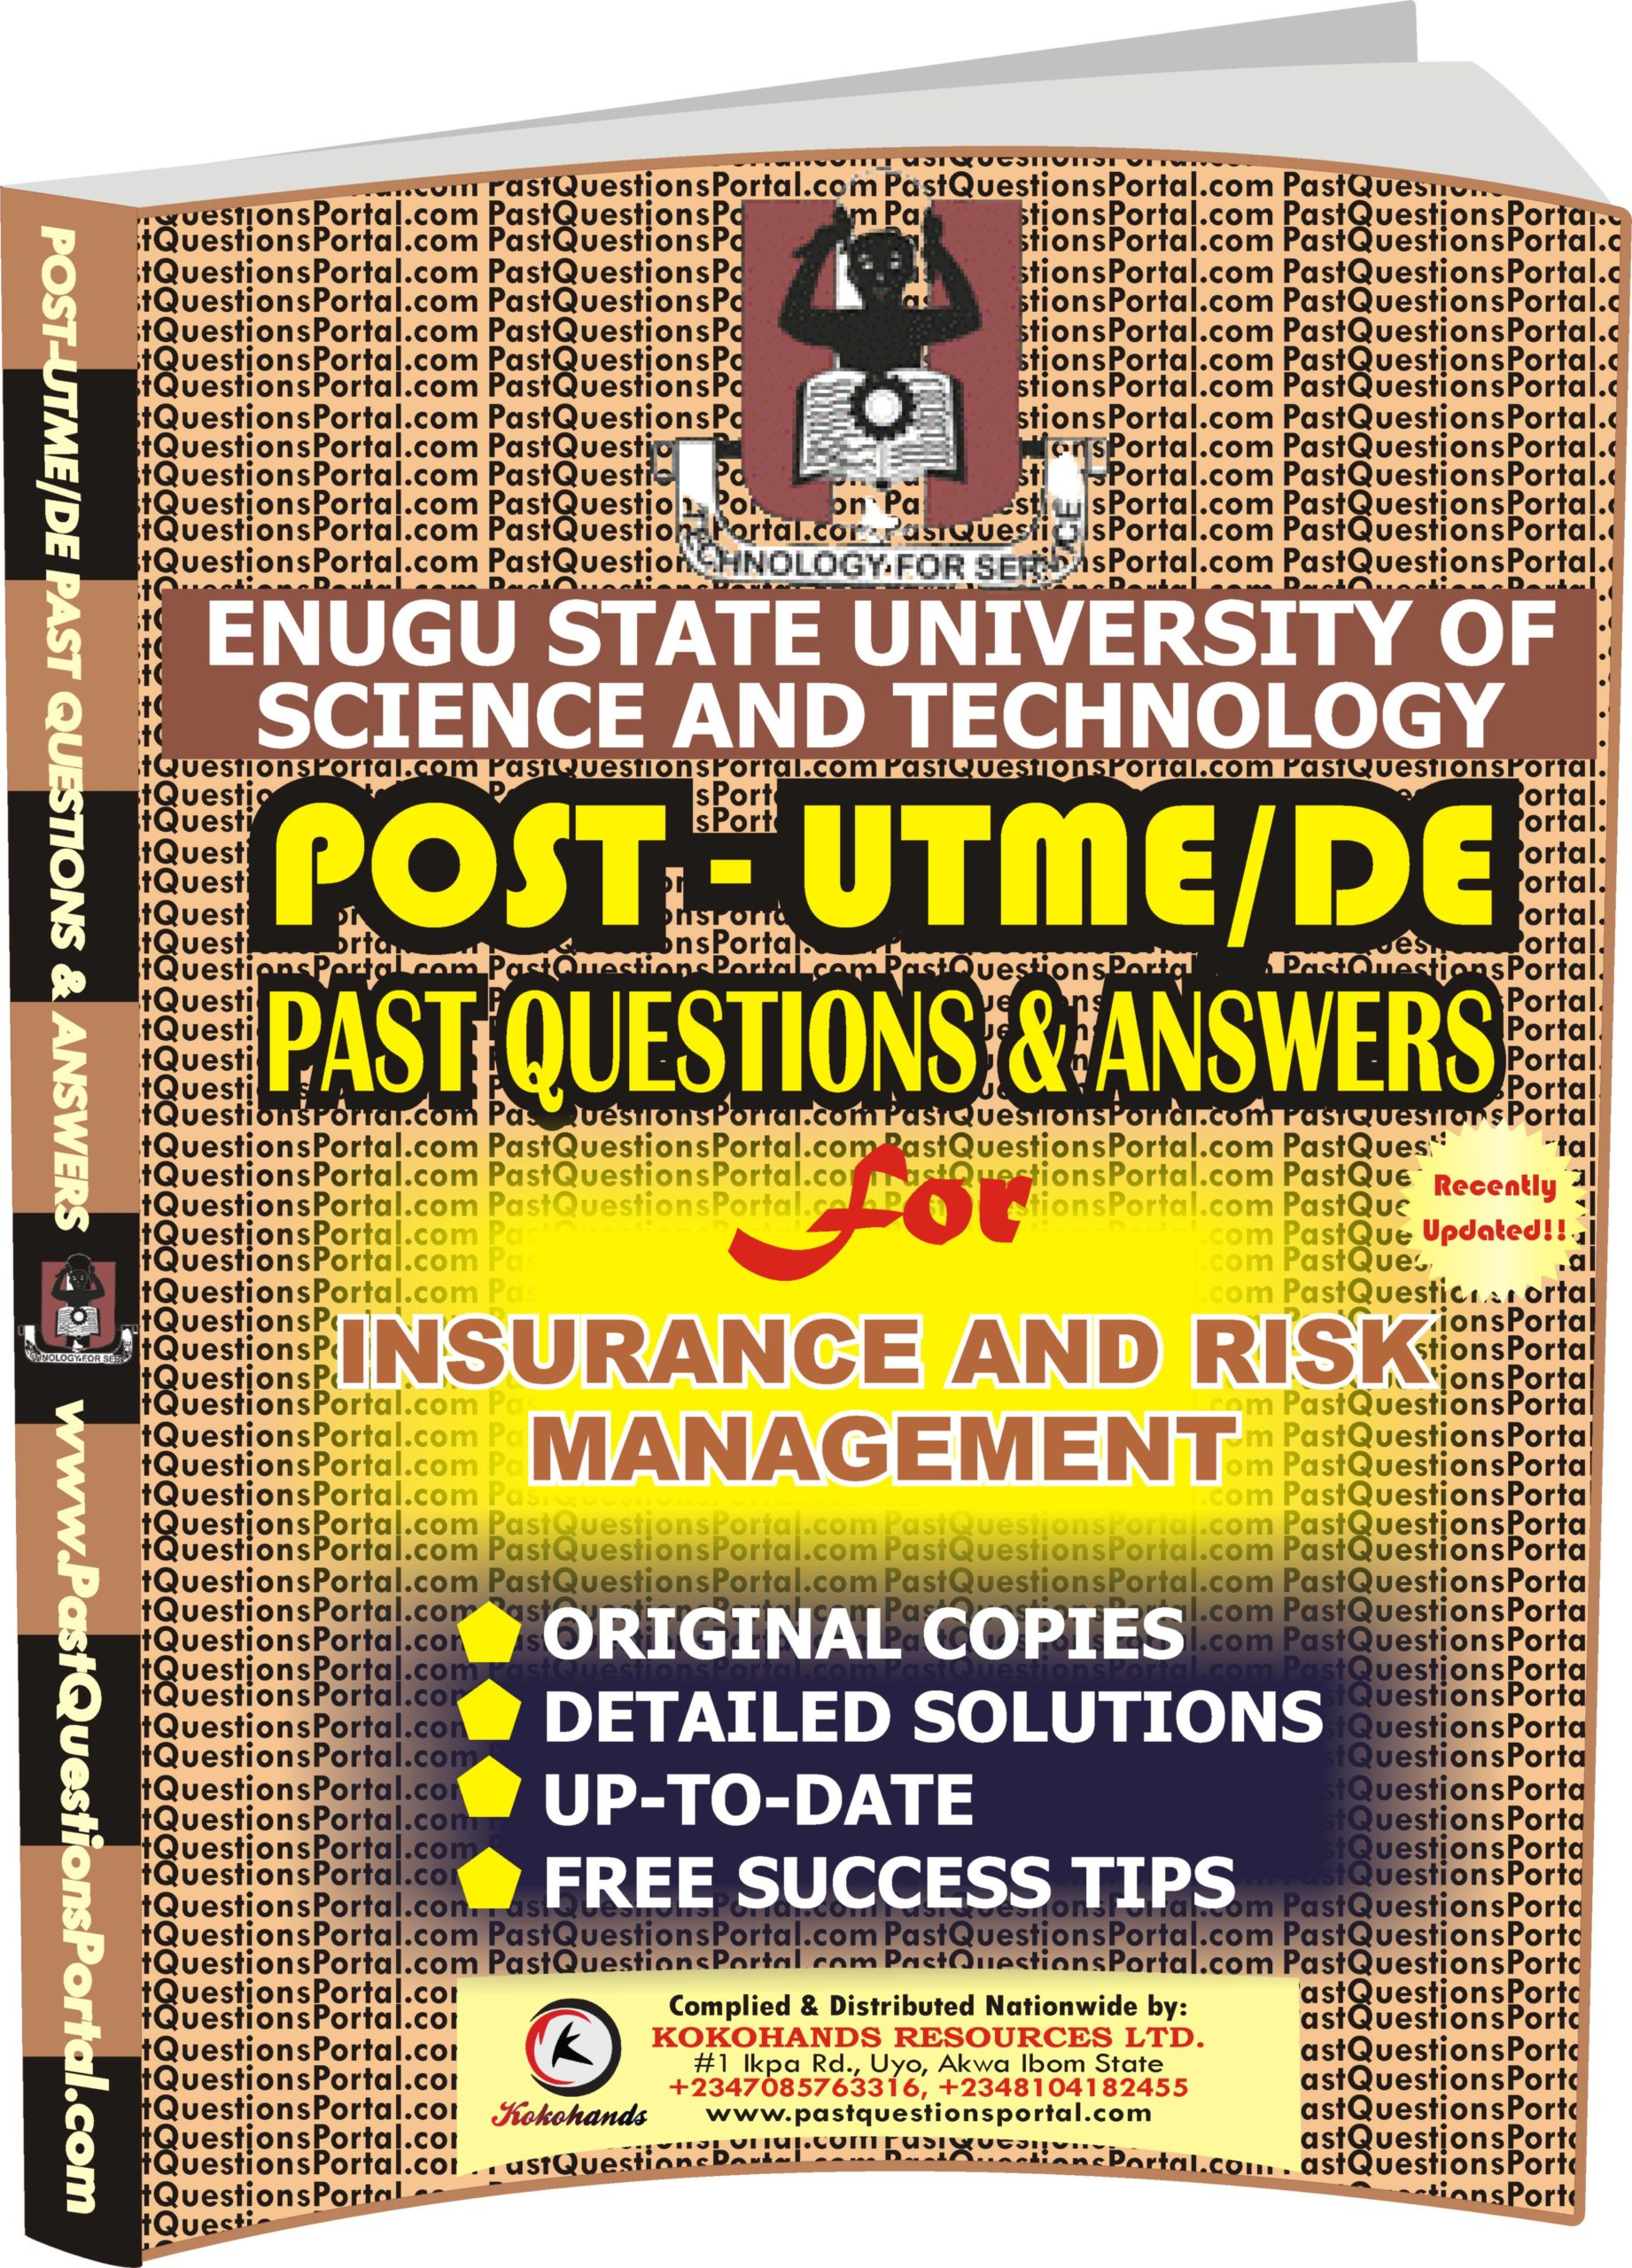 ESUT Post UTME Past Questions for Insurance and Risk Management